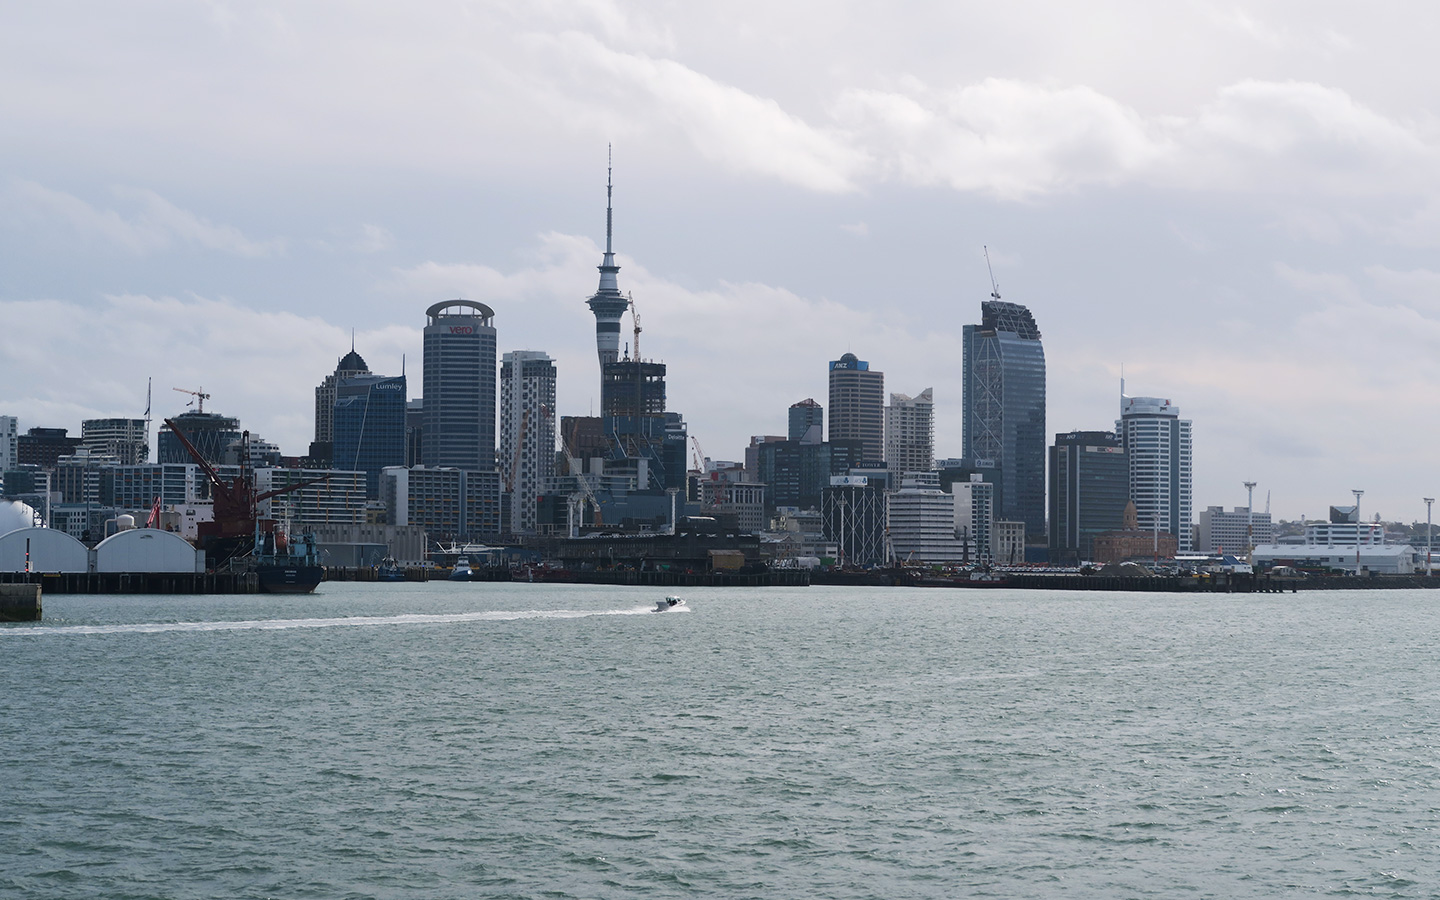 auckland skyline from ferry in new zealand